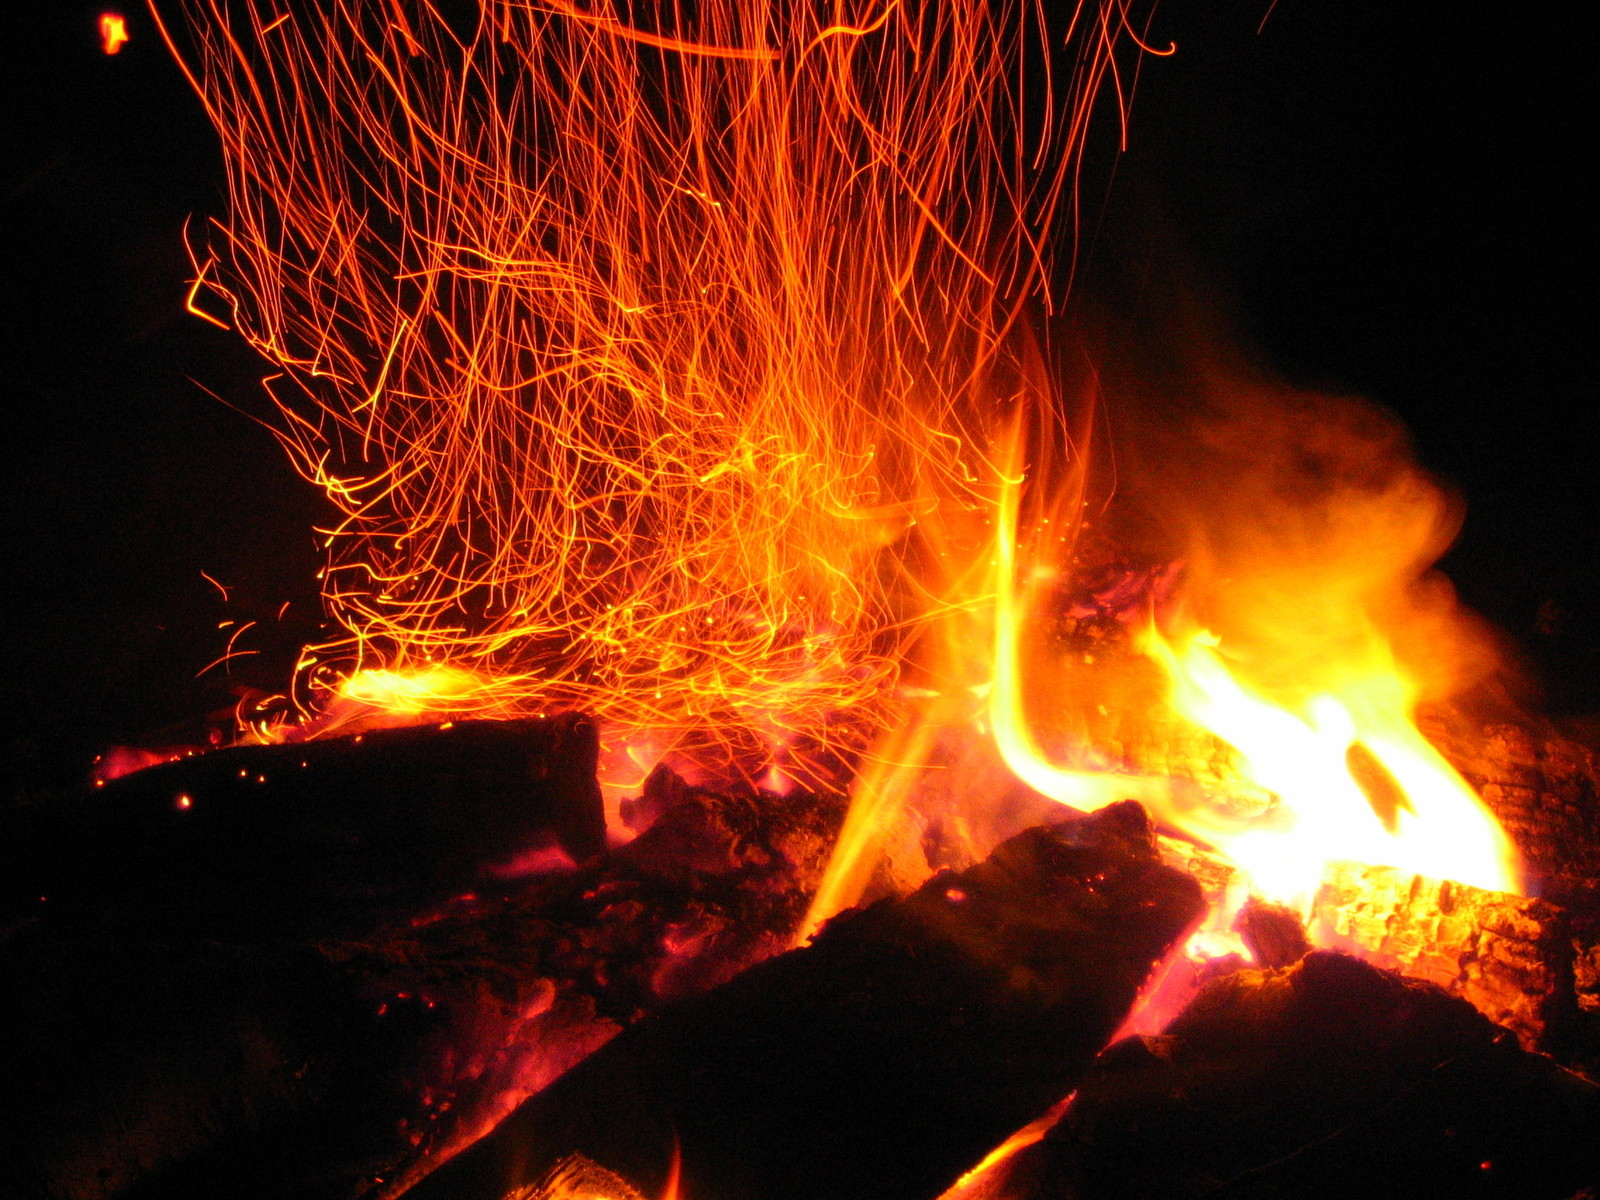 The ways we can disseminate B2B stories has spread like these sparks from a single fire pit